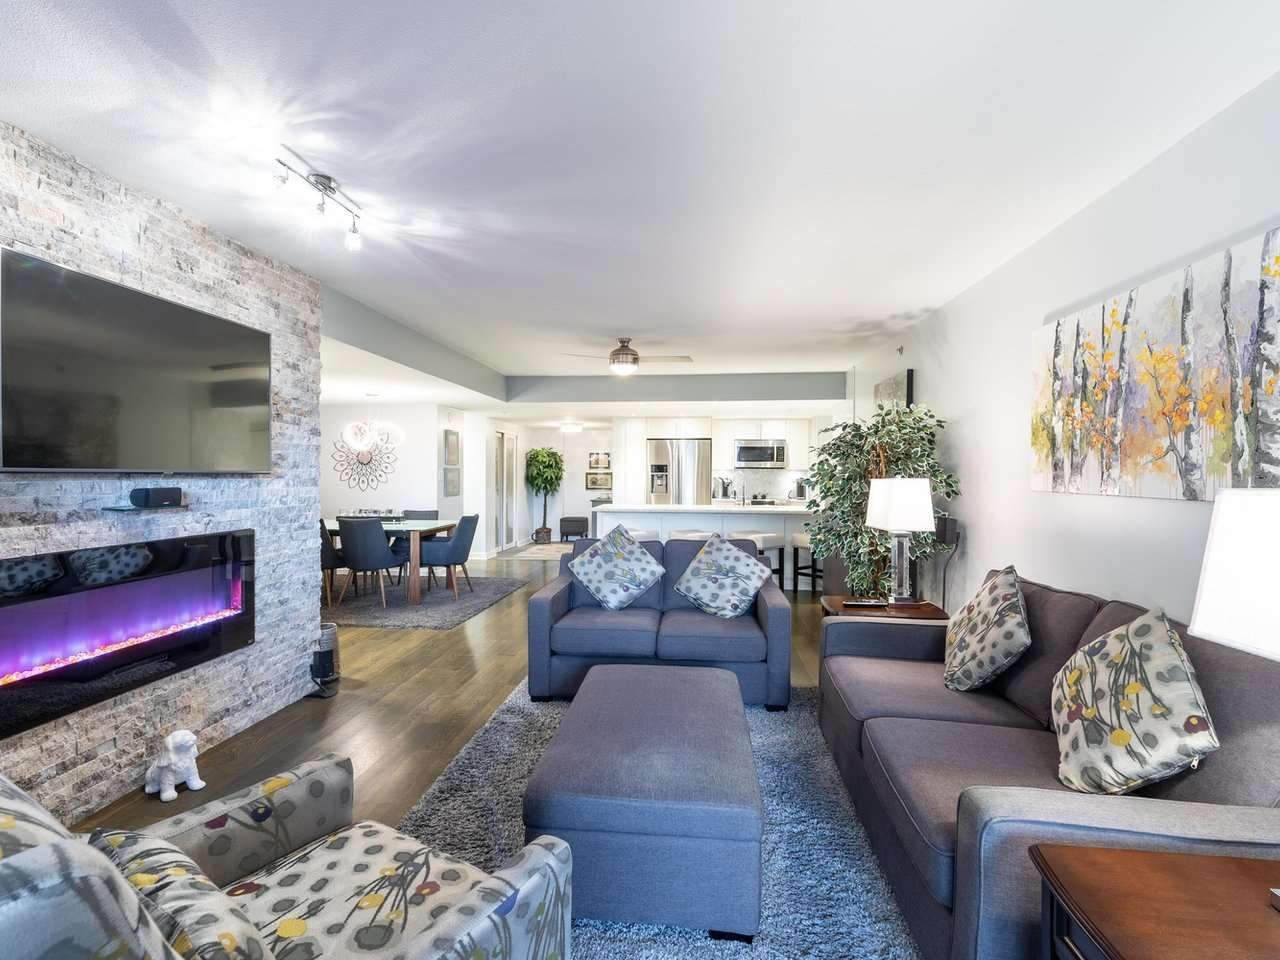 """Main Photo: 211 2665 W BROADWAY in Vancouver: Kitsilano Condo for sale in """"MAGUIRE BUILDING"""" (Vancouver West)  : MLS®# R2550864"""